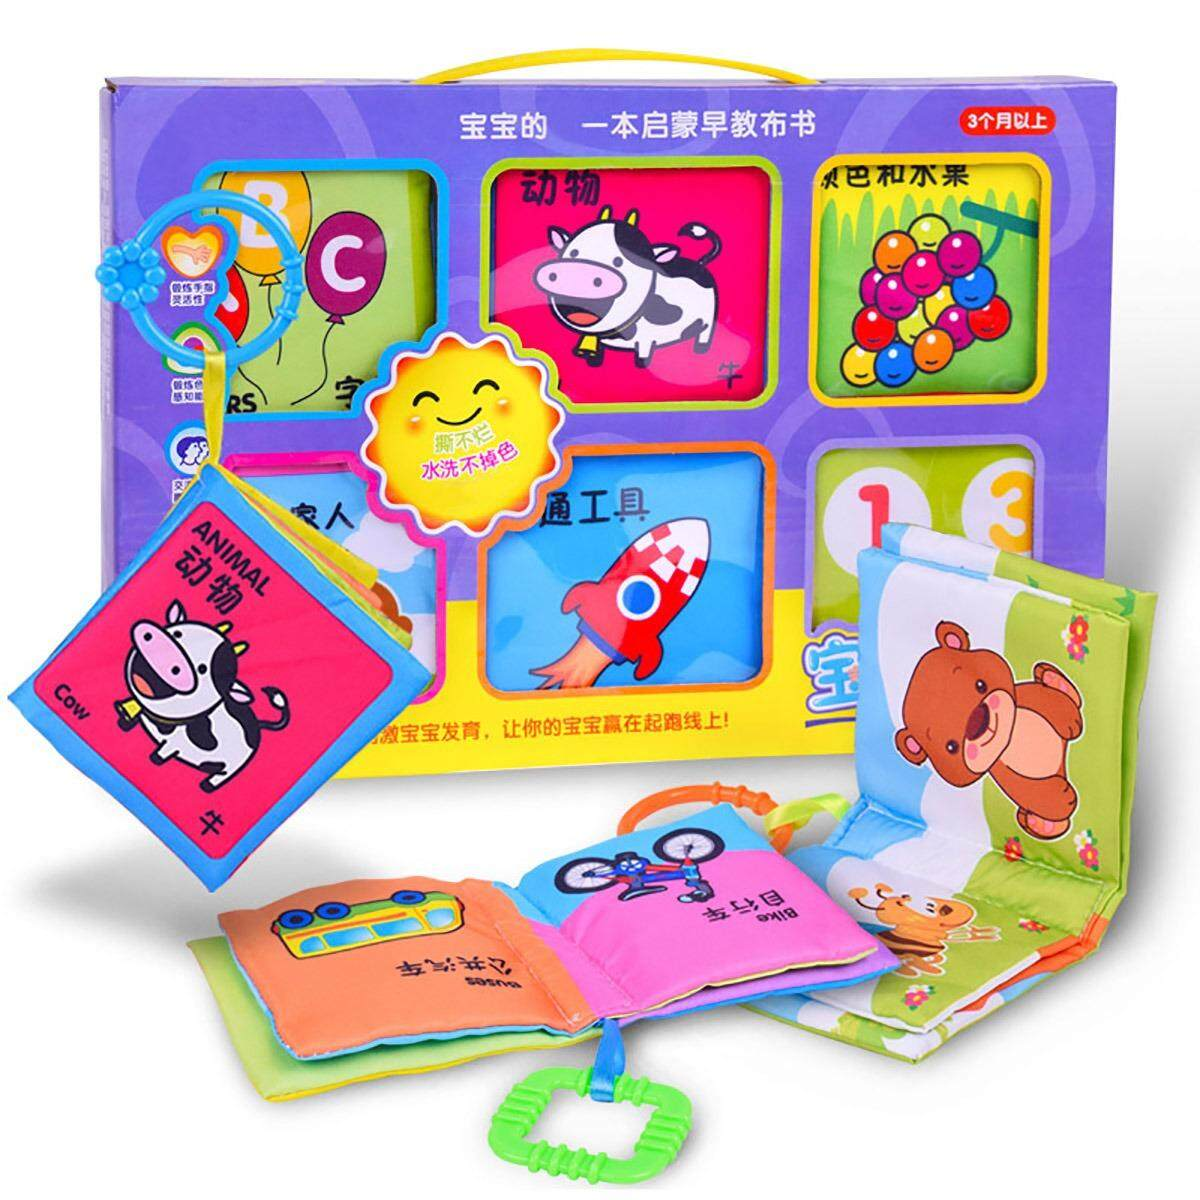 Baby Toy Soft Cloth Books Rustle Sound Infant Educational Toy Newborn Crib Bed Baby Toys kind for Random